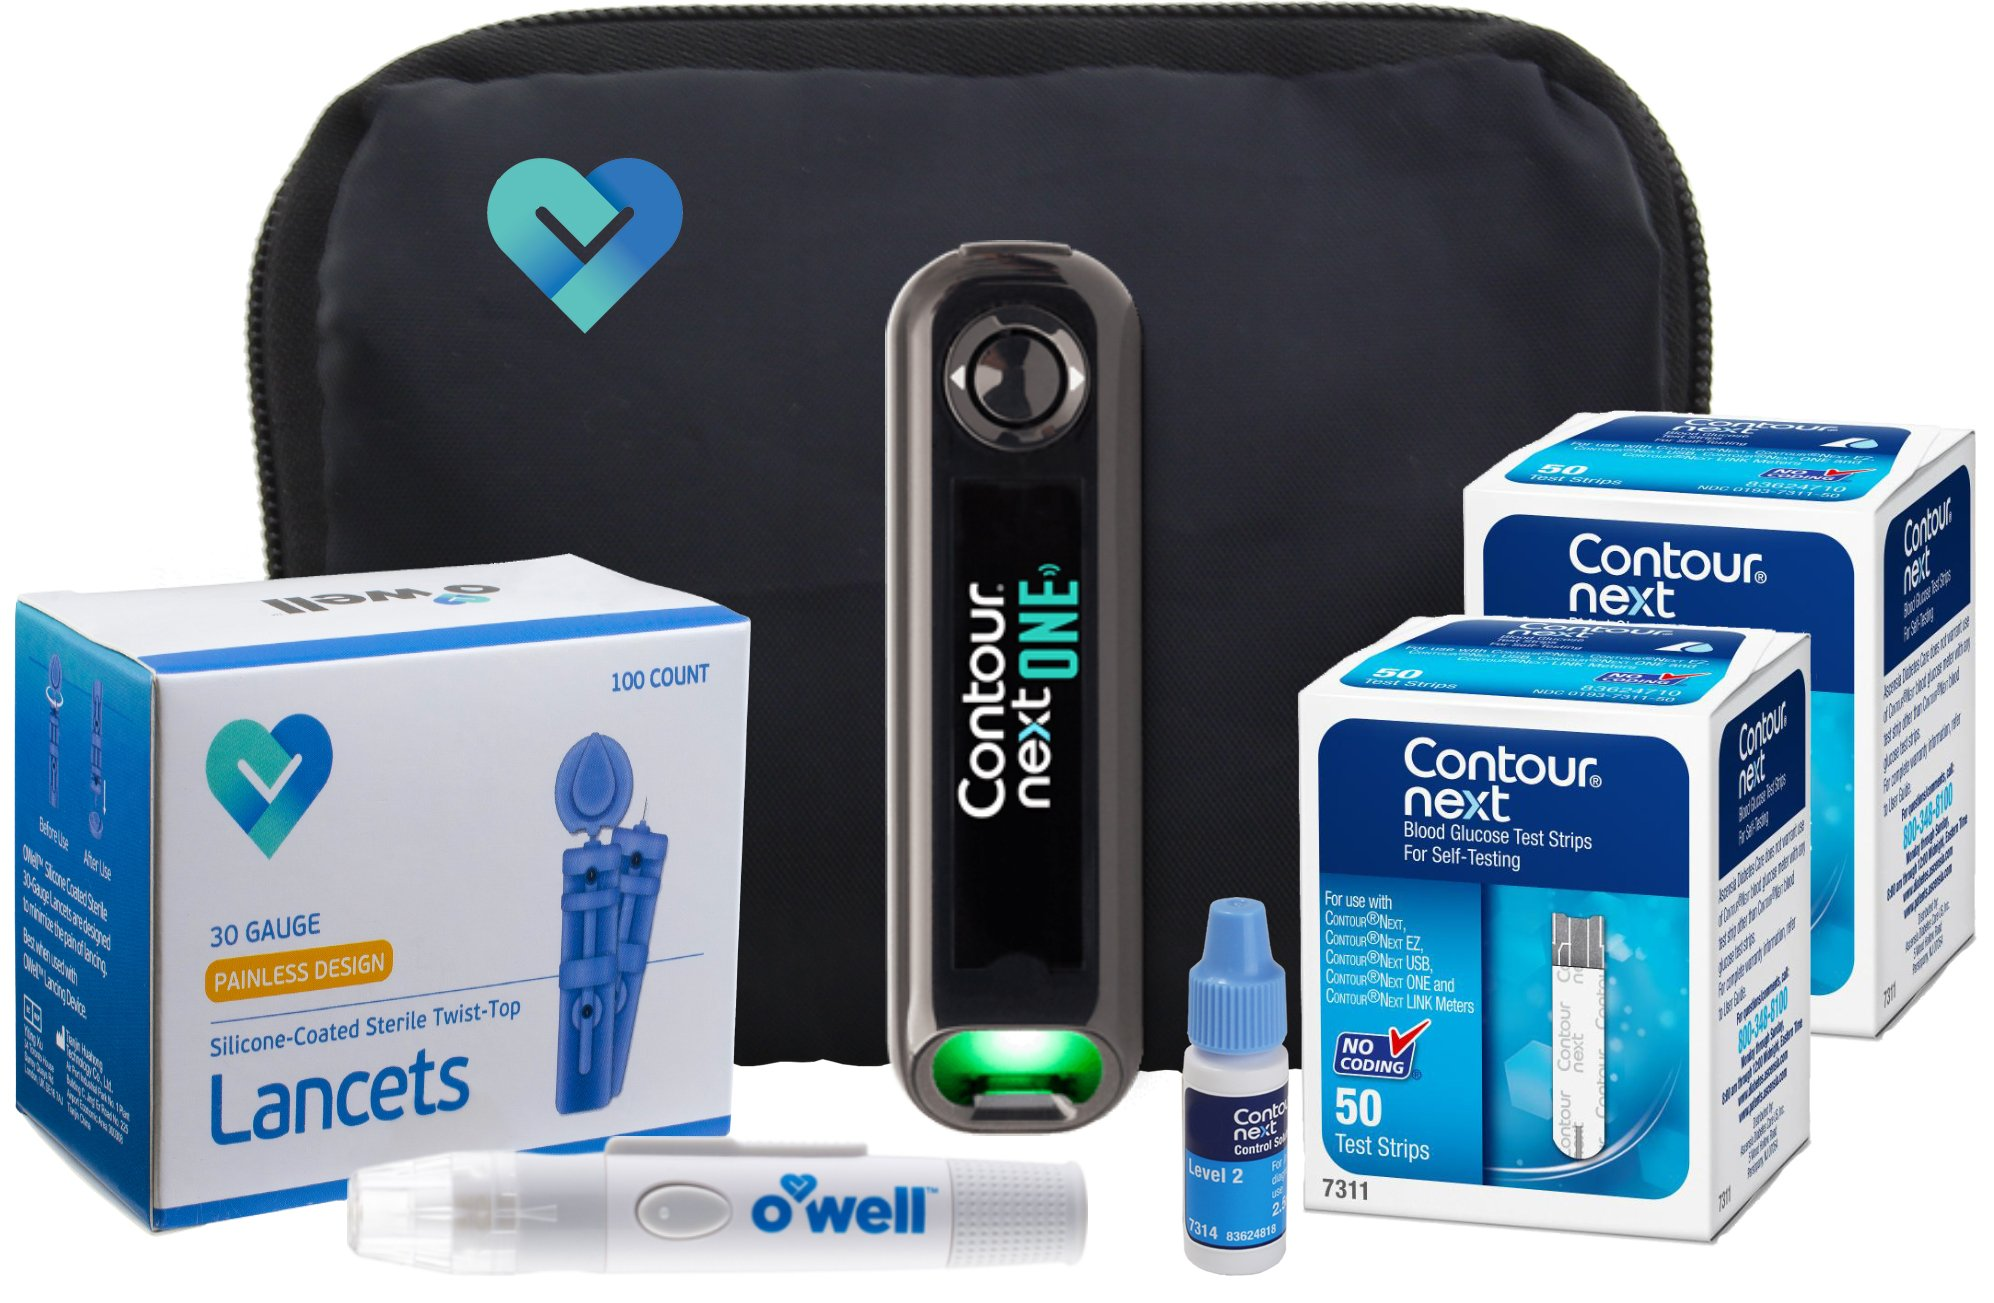 Contour NEXT ONE Diabetes Testing Kit, 100 Count | Glucometer, 100 Contour NEXT Test Strips, Contour NEXT Control Solution, 100 Lancets, Lancing Device, Manuals, Log Book & Carry Case